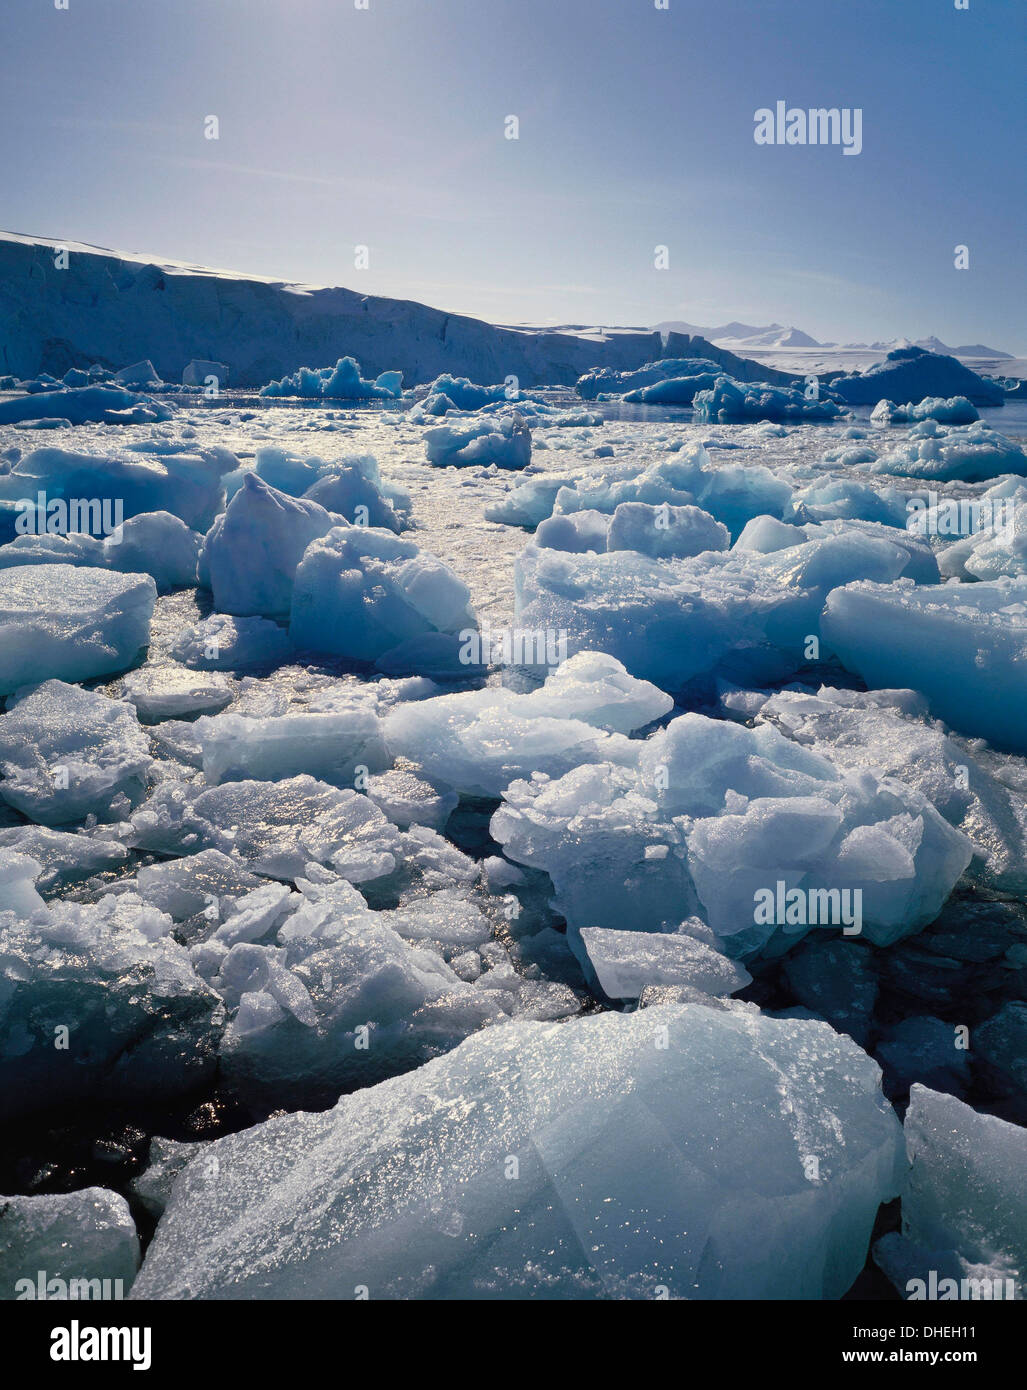 Ice on Antartica, Close Up - Stock Image